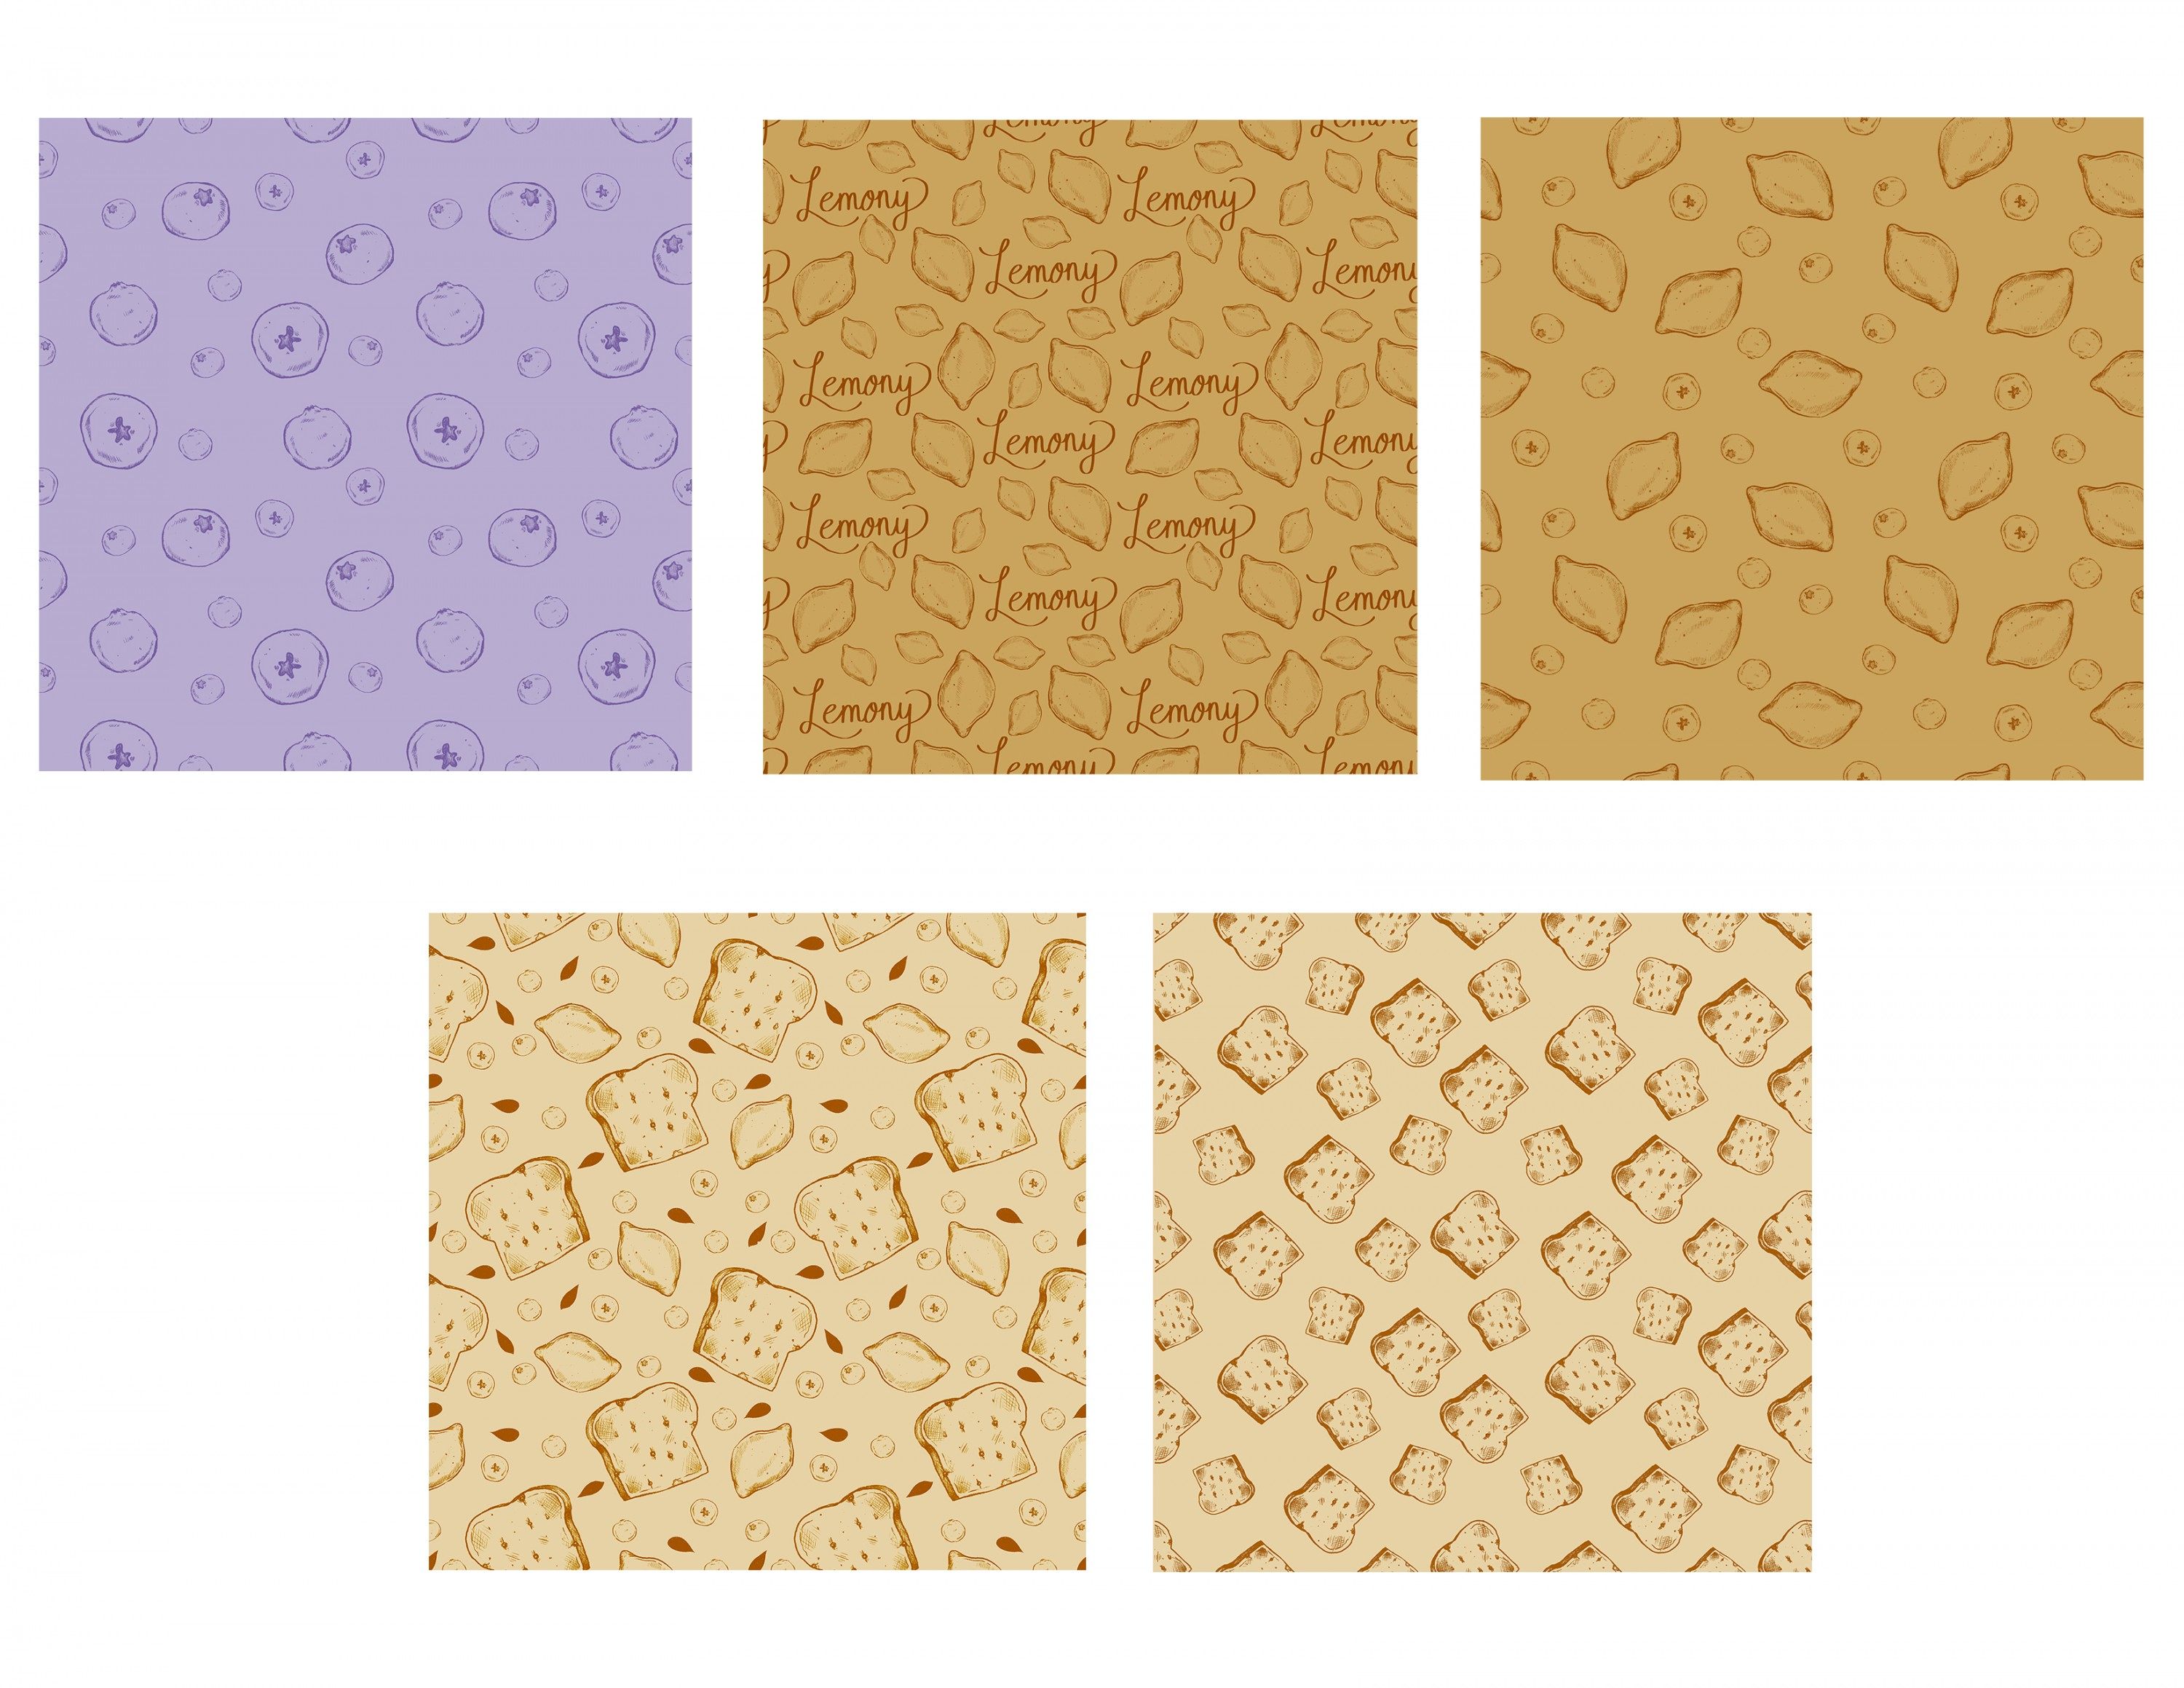 Pattern collection showing lemons, blueberries, and blueberry bread.